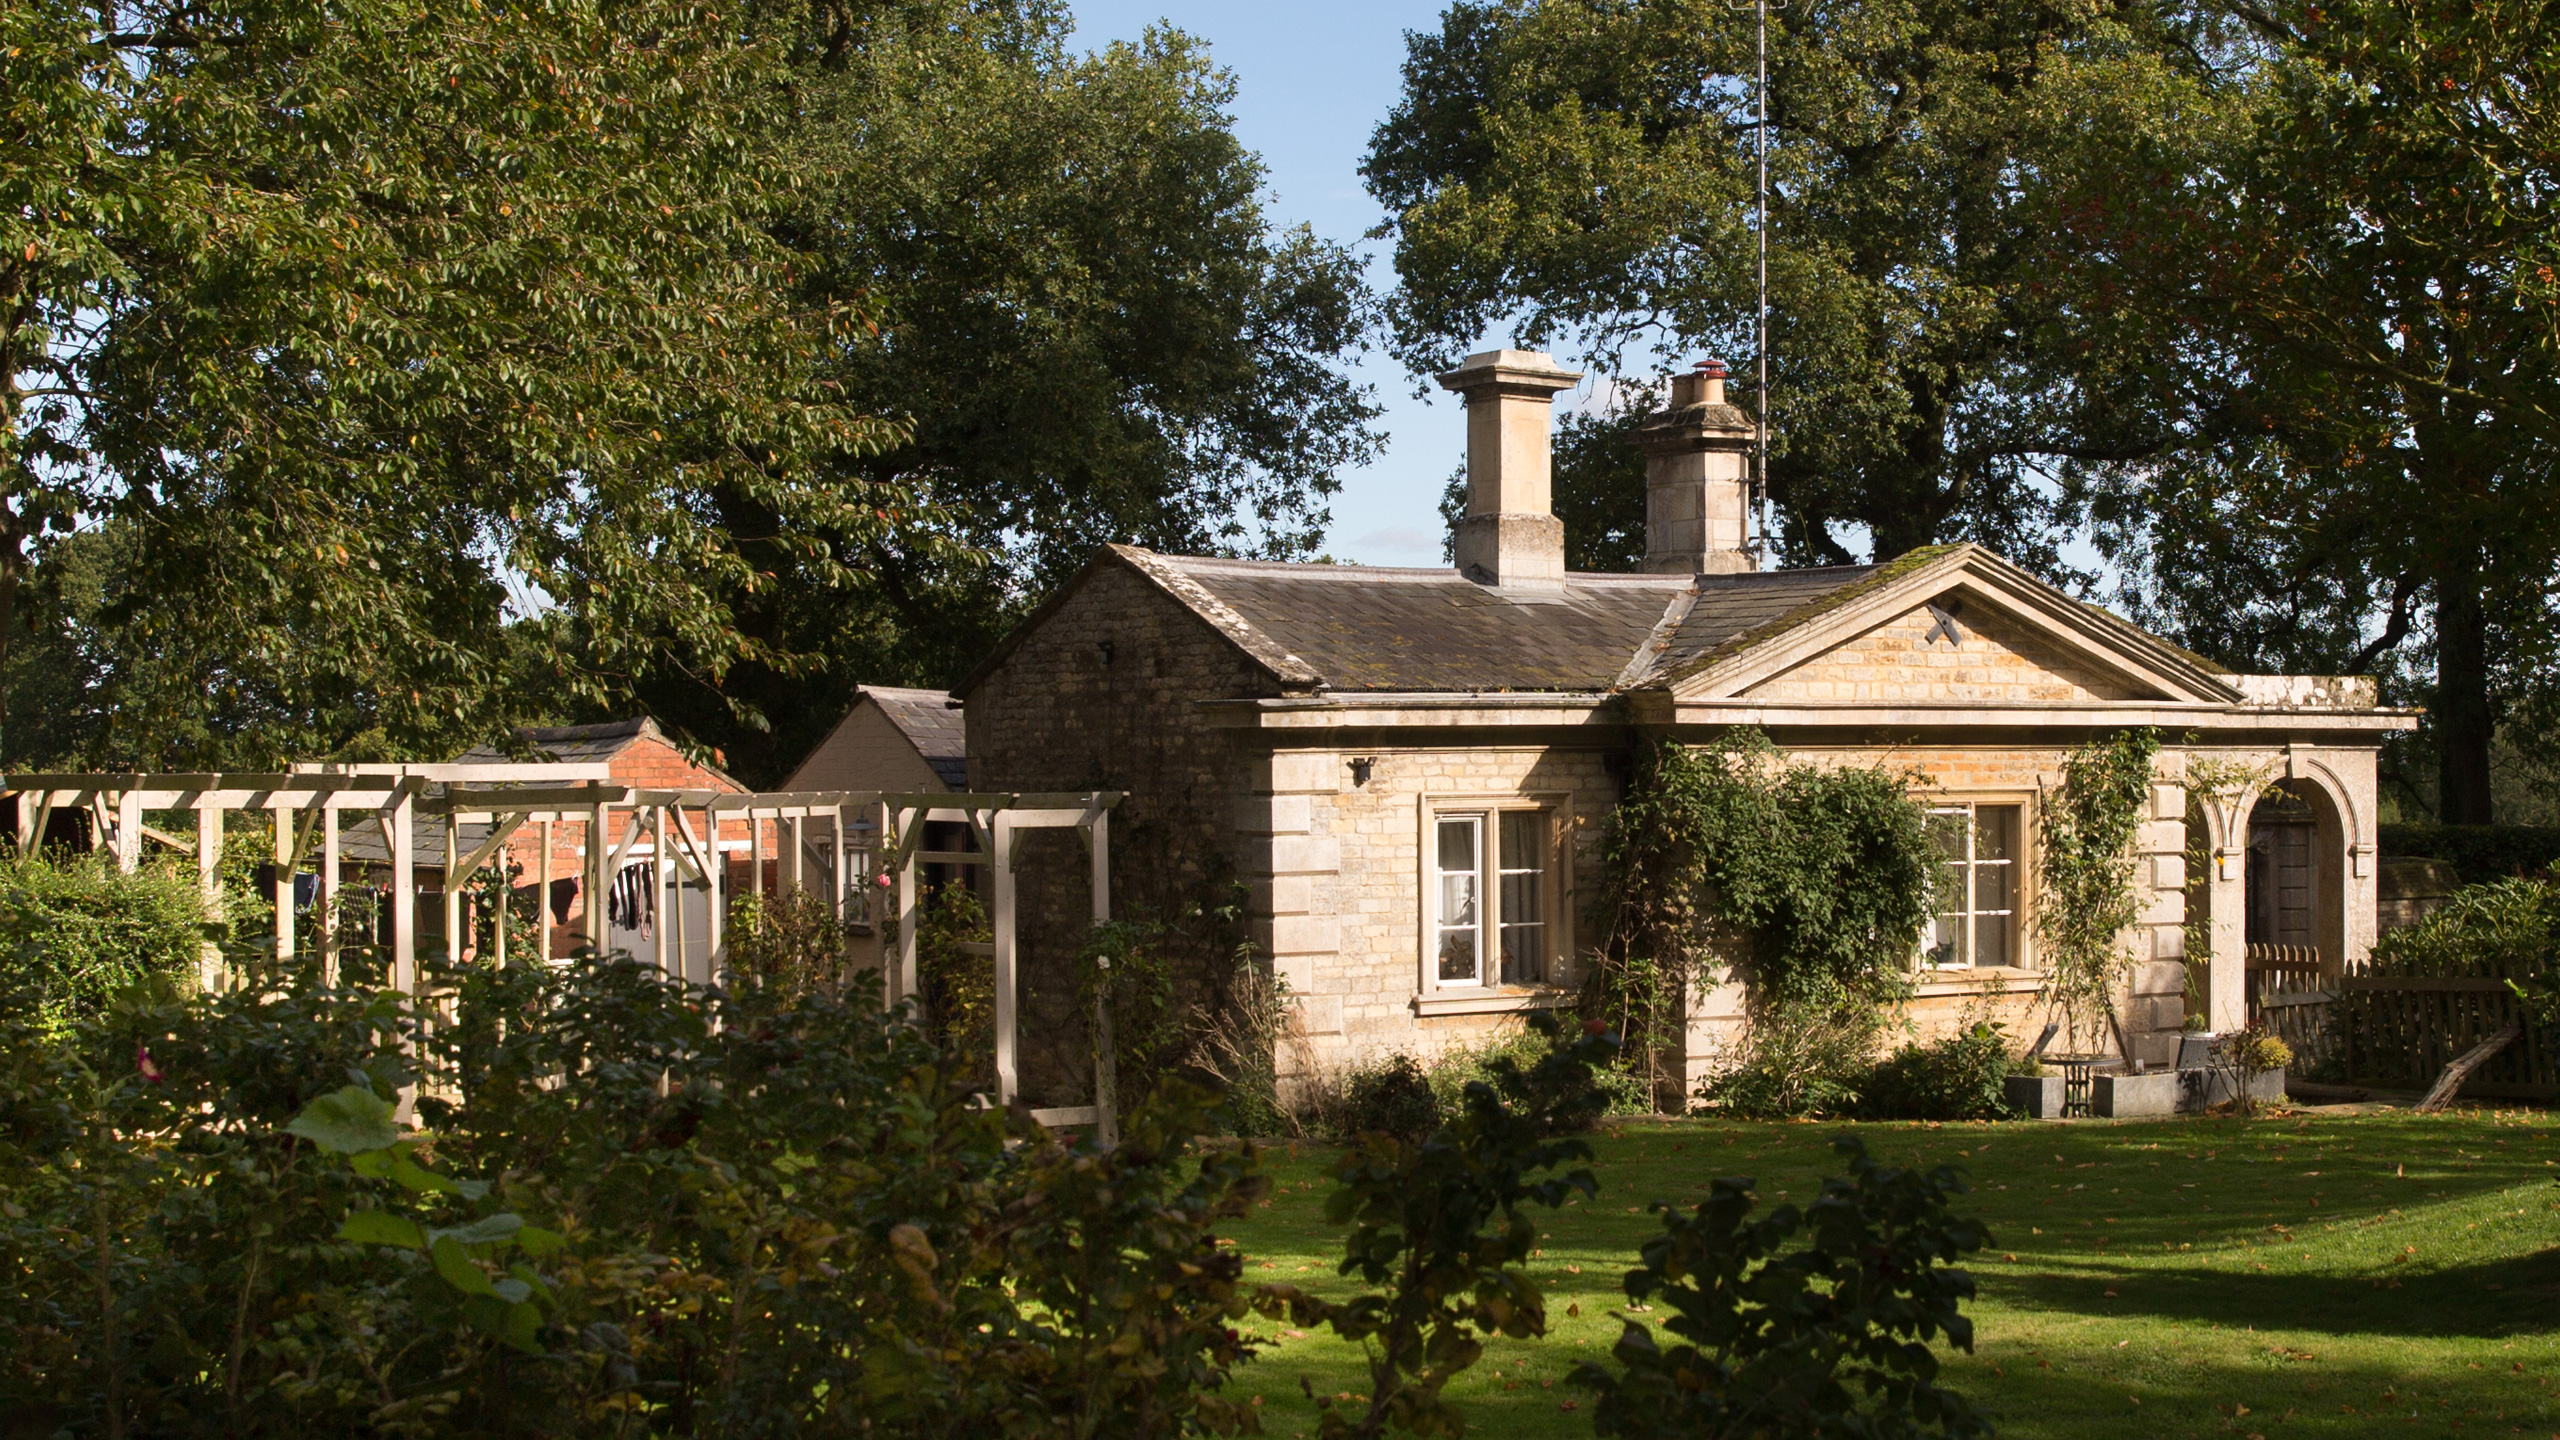 The Lodge, Lyndon Hall, Lyndon